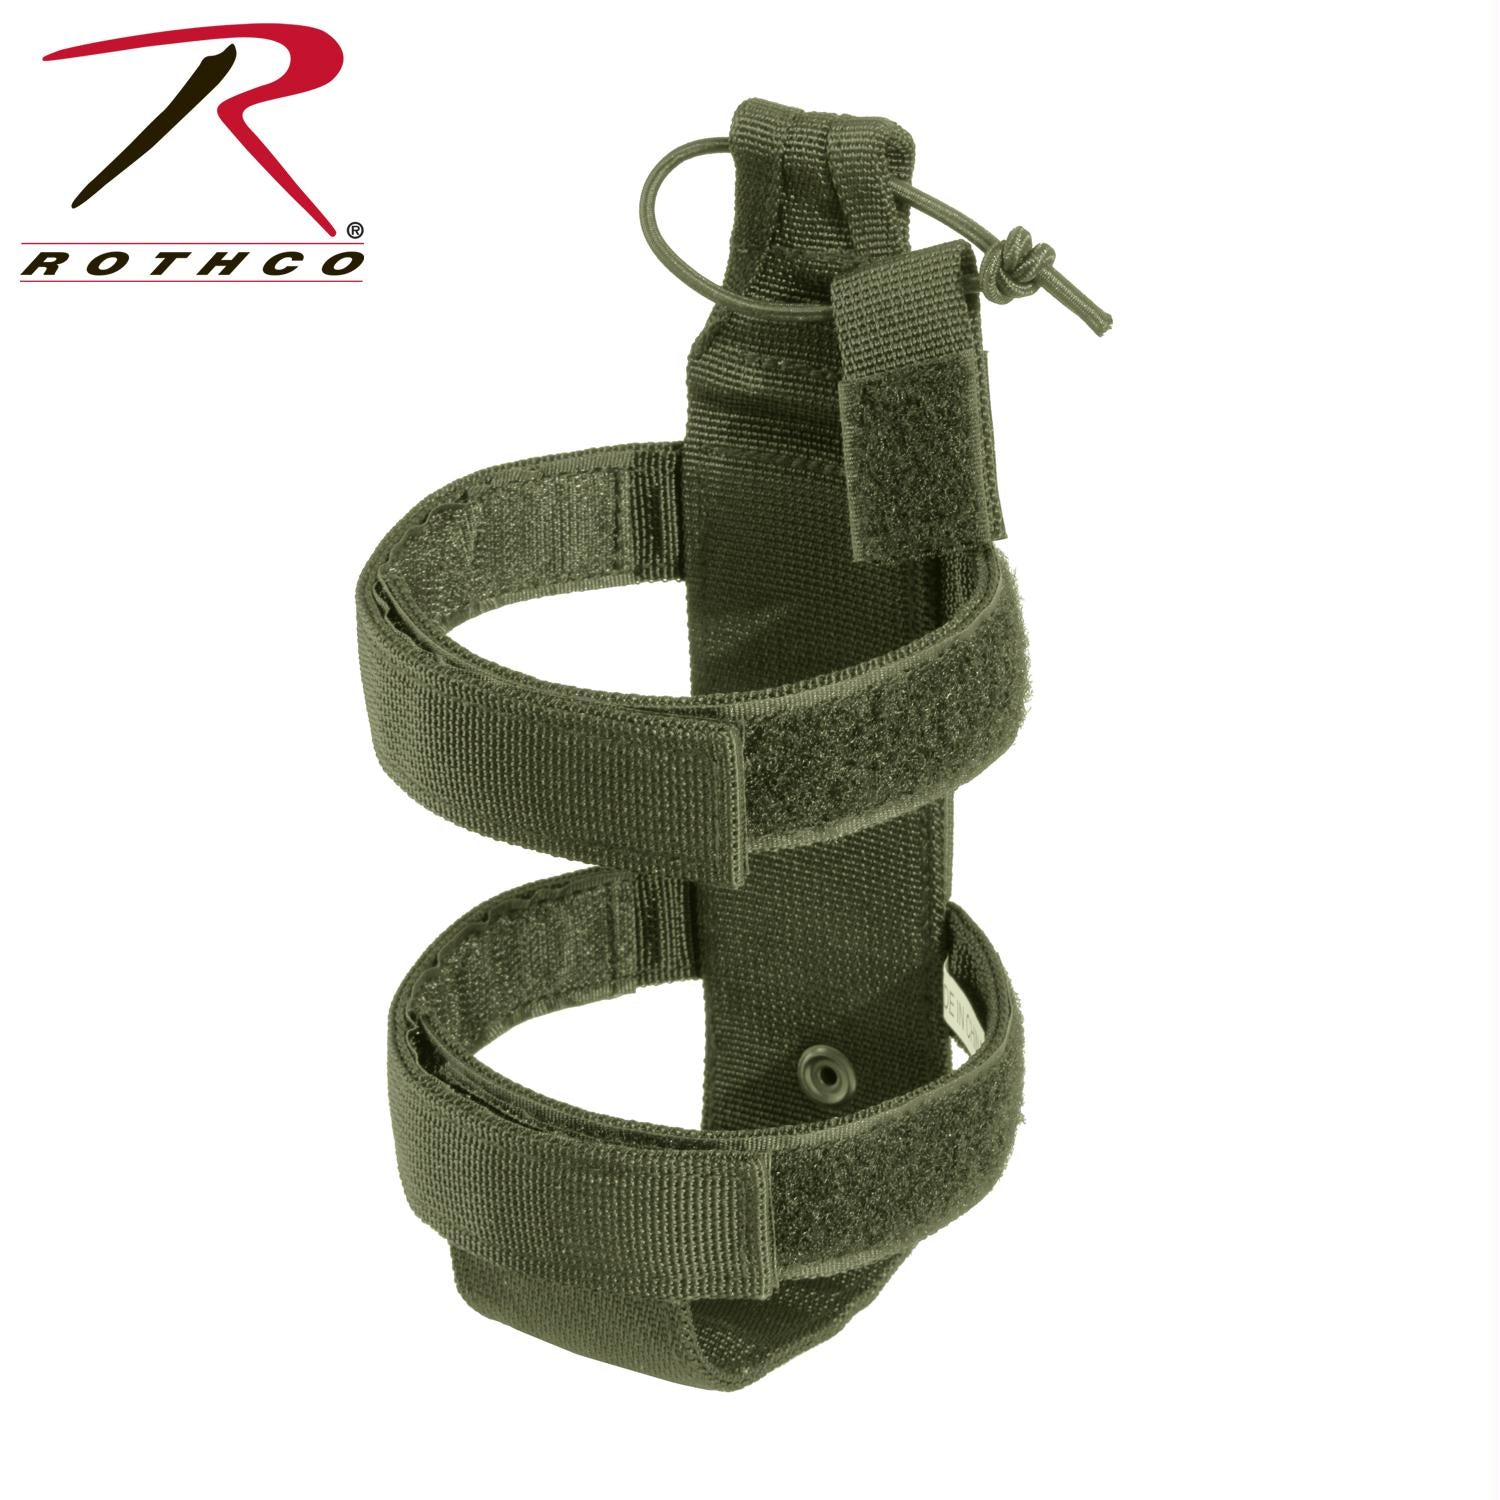 Rothco Lightweight MOLLE Bottle Carrier - Olive Drab